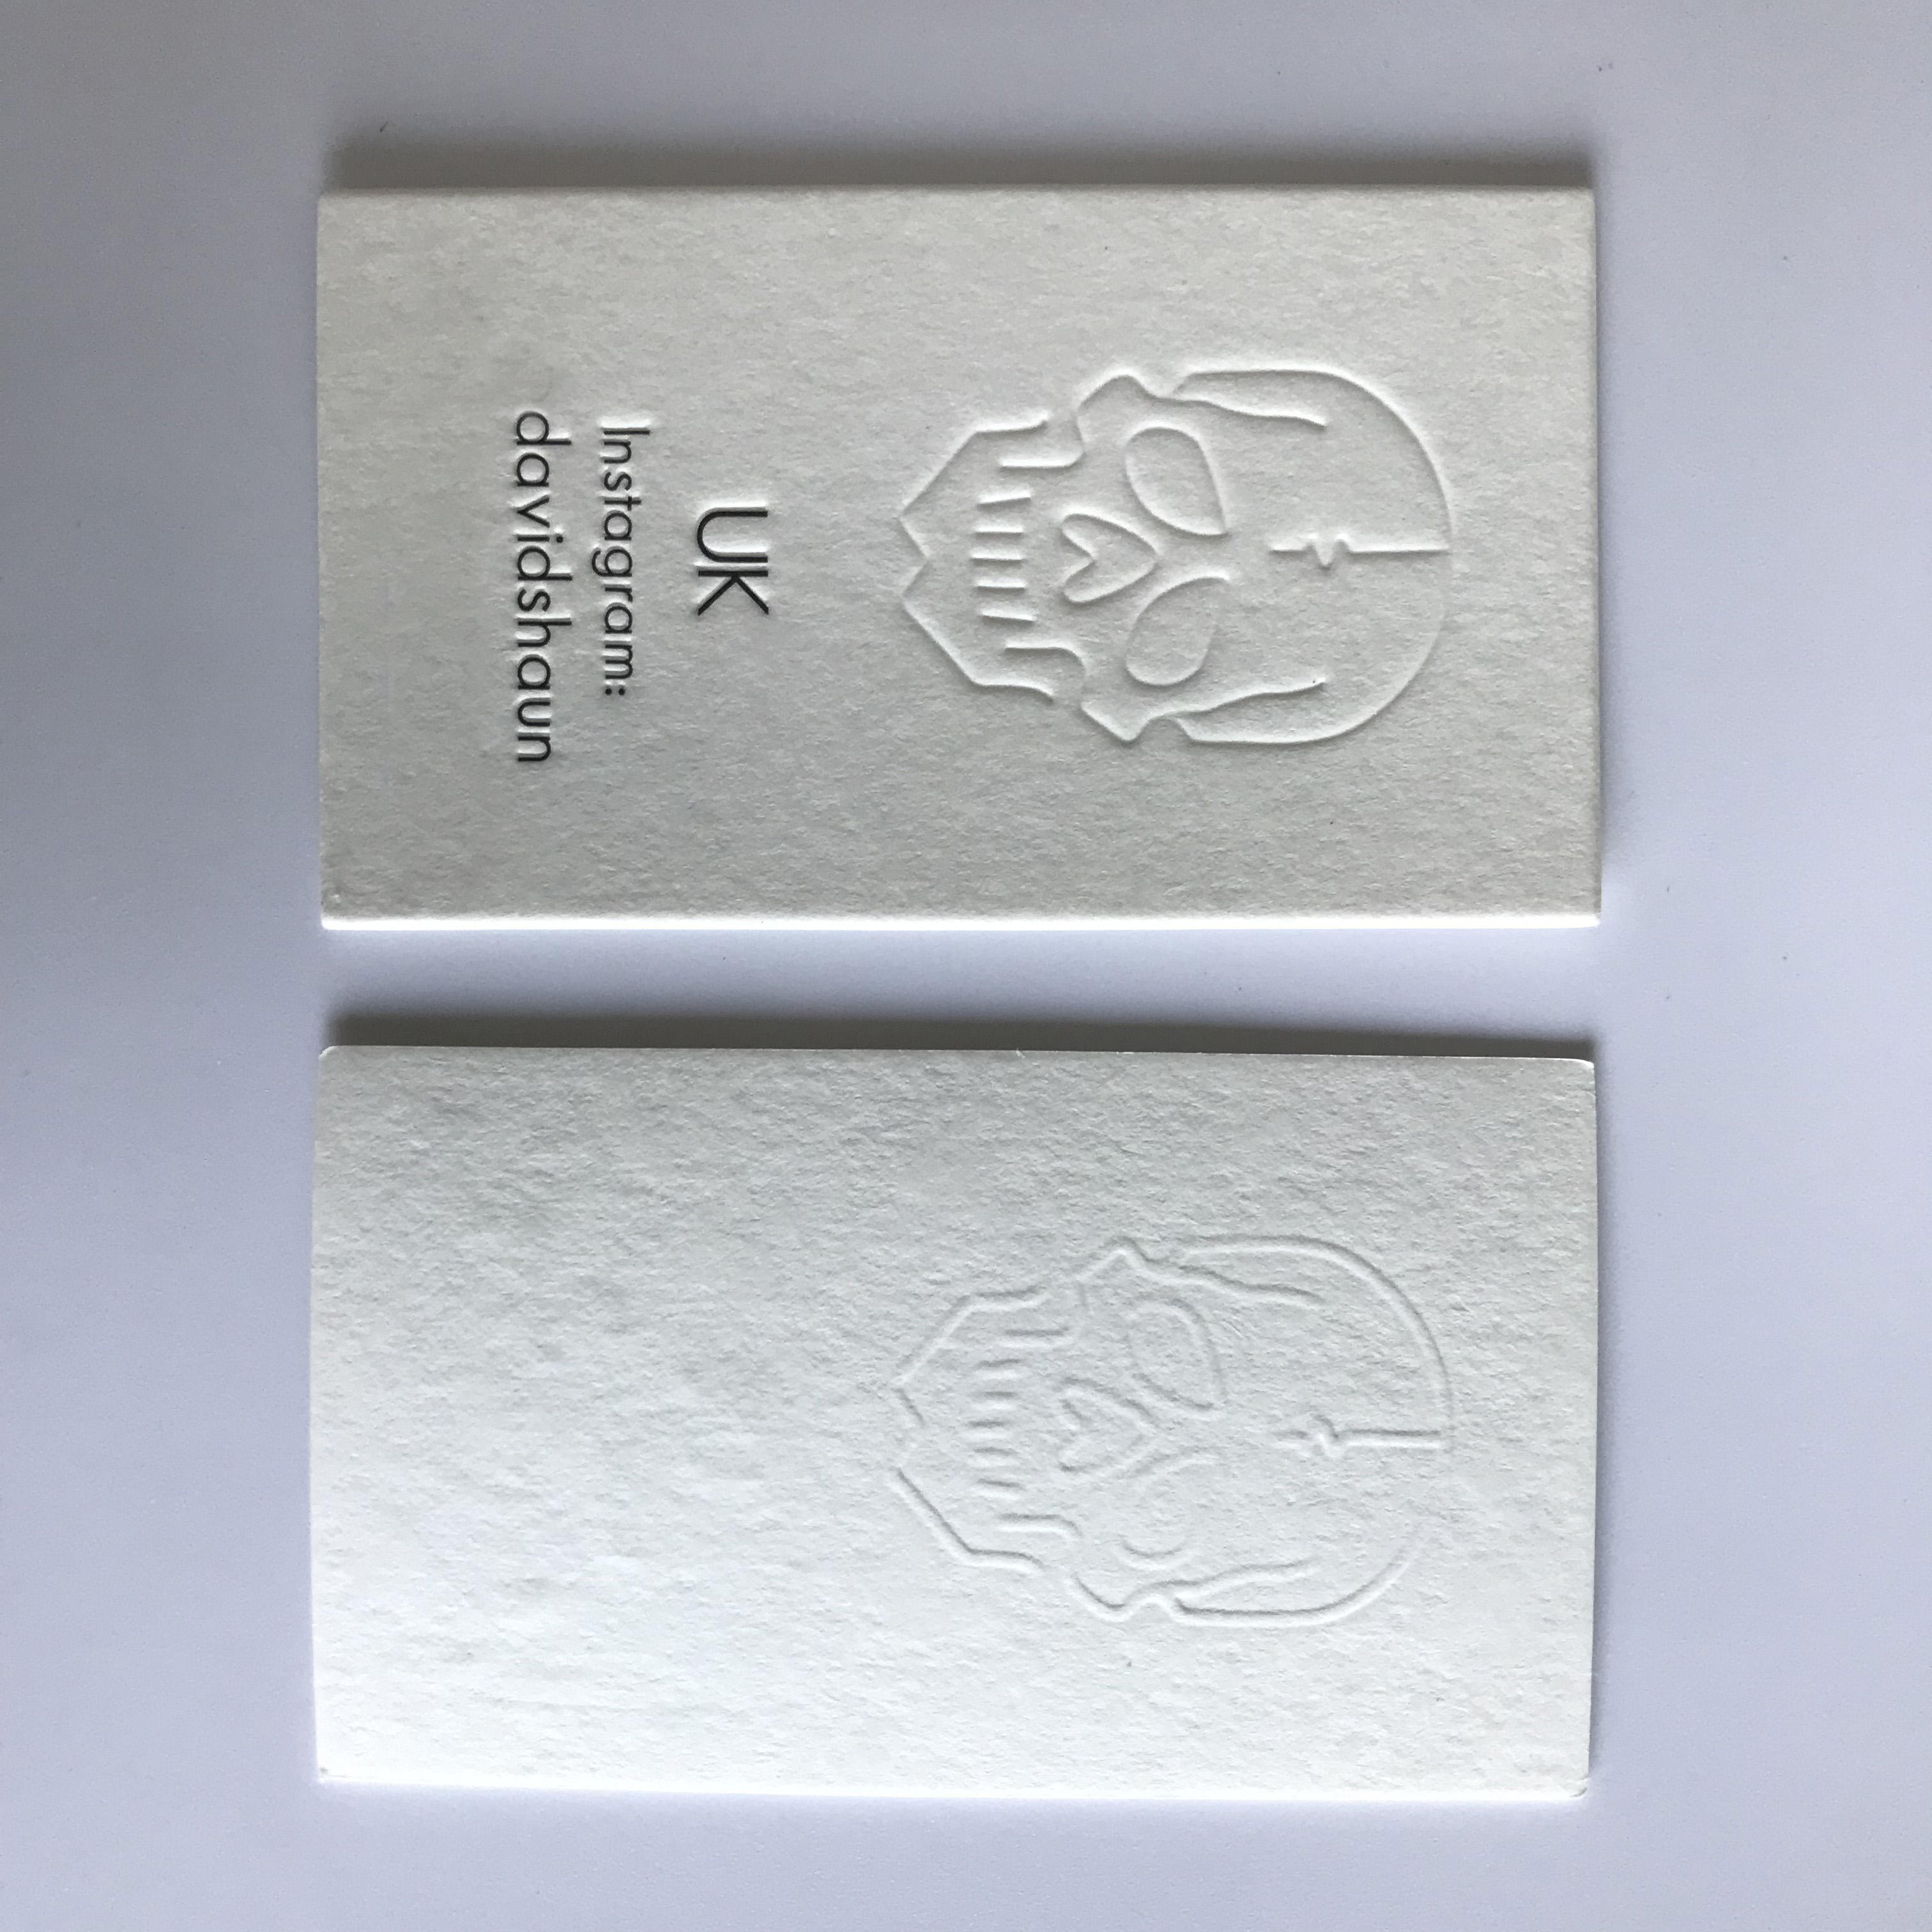 900GSM Letterpress Thick White Cotton Cardboard Paper Garment Hang Tag